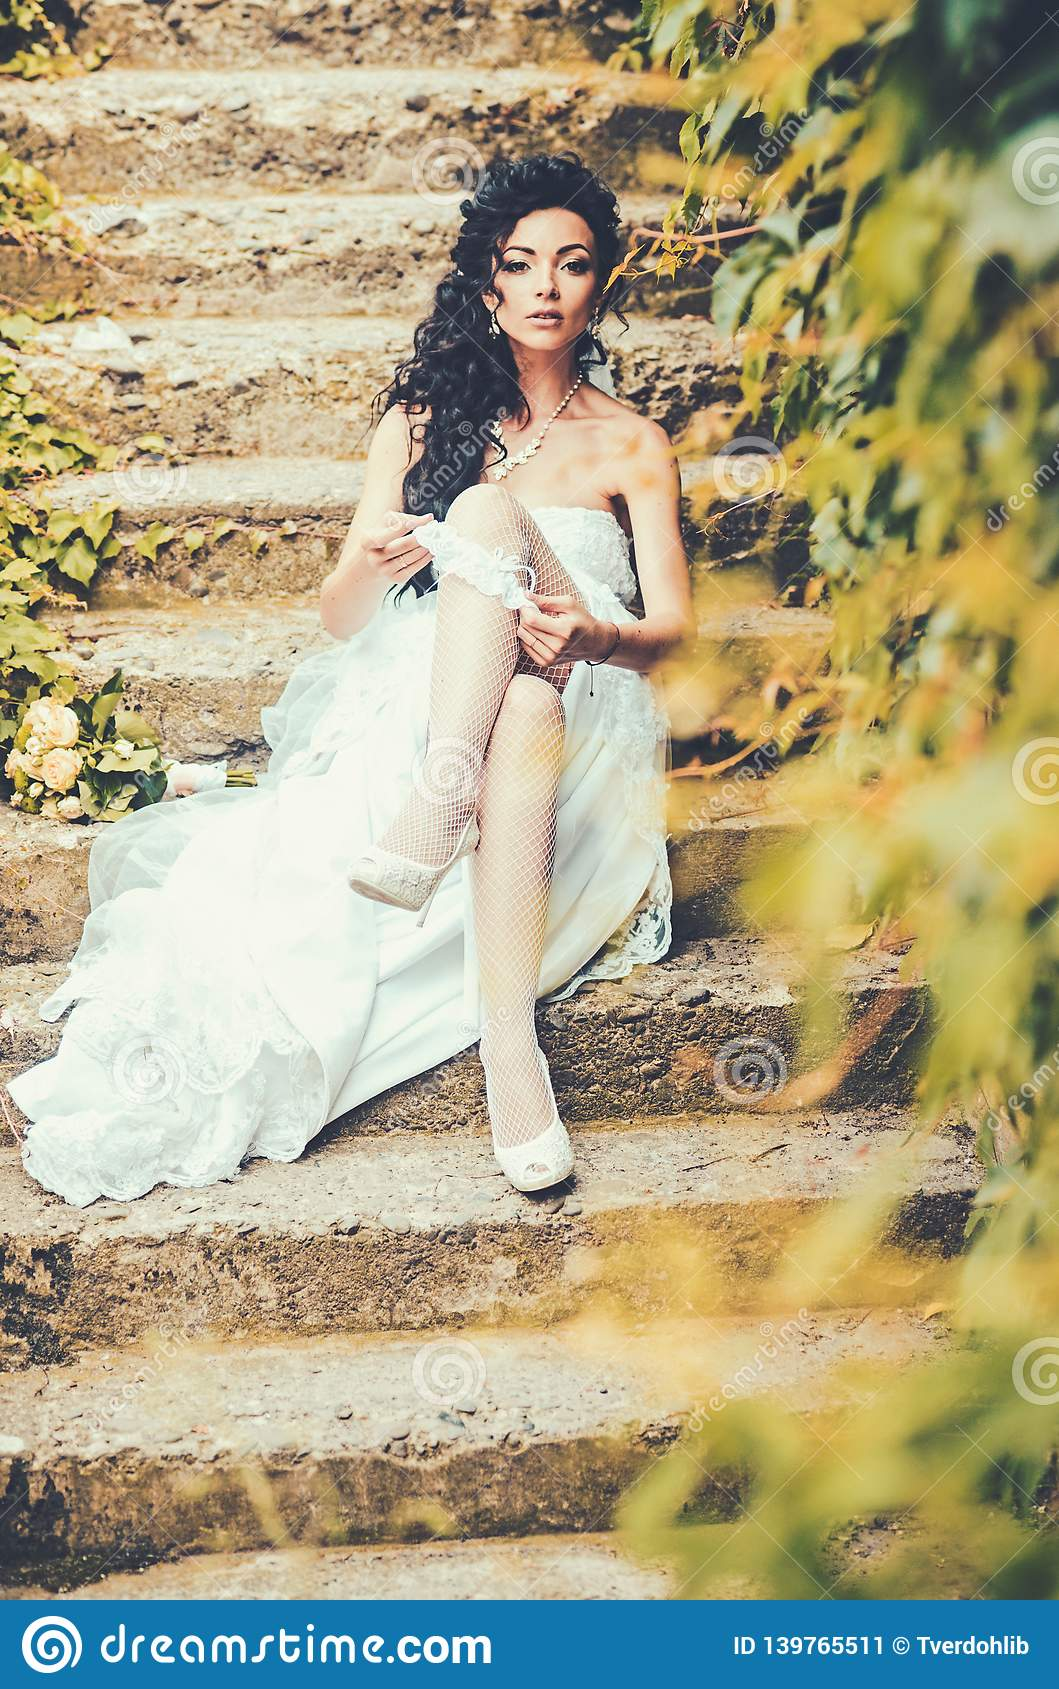 fa5f554b7 Bride in white dress sit on steps outdoor. Woman wear lace garter on leg.  woman in stockings lingerie on wedding day. Girl with bridal makeup and  hairstyle.